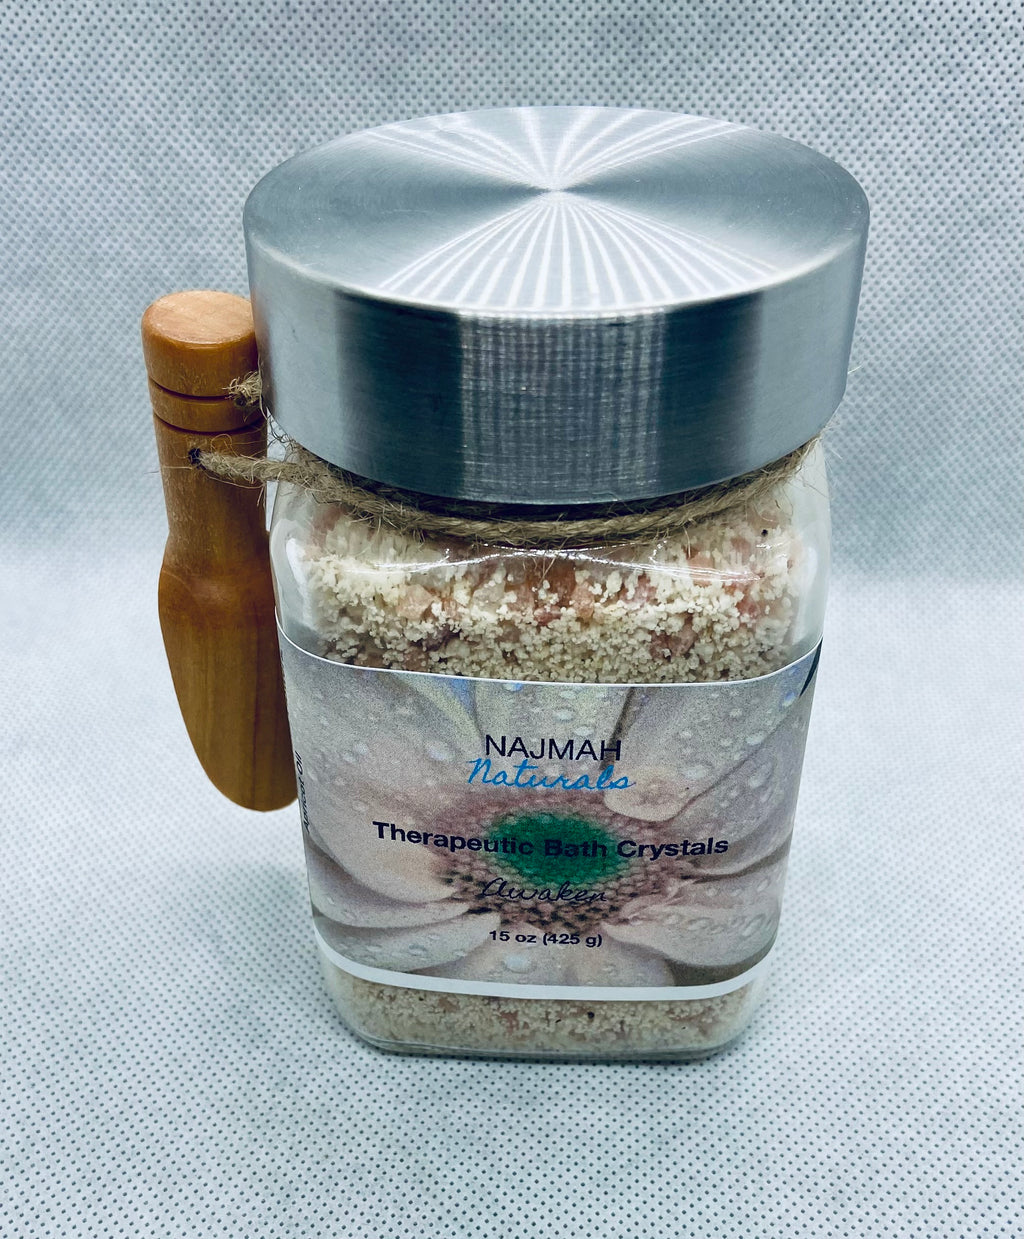 Our Awaken Therapeutic Bath Crystals are the ultimate reviving, self care herbal salts with Epson Salt, Himalayan Pink Salt, Sodium Bicarbonate (Aluminum-Free), Organic Essential Oils, Calendula Officinalis Flowers and Apricot Oil.